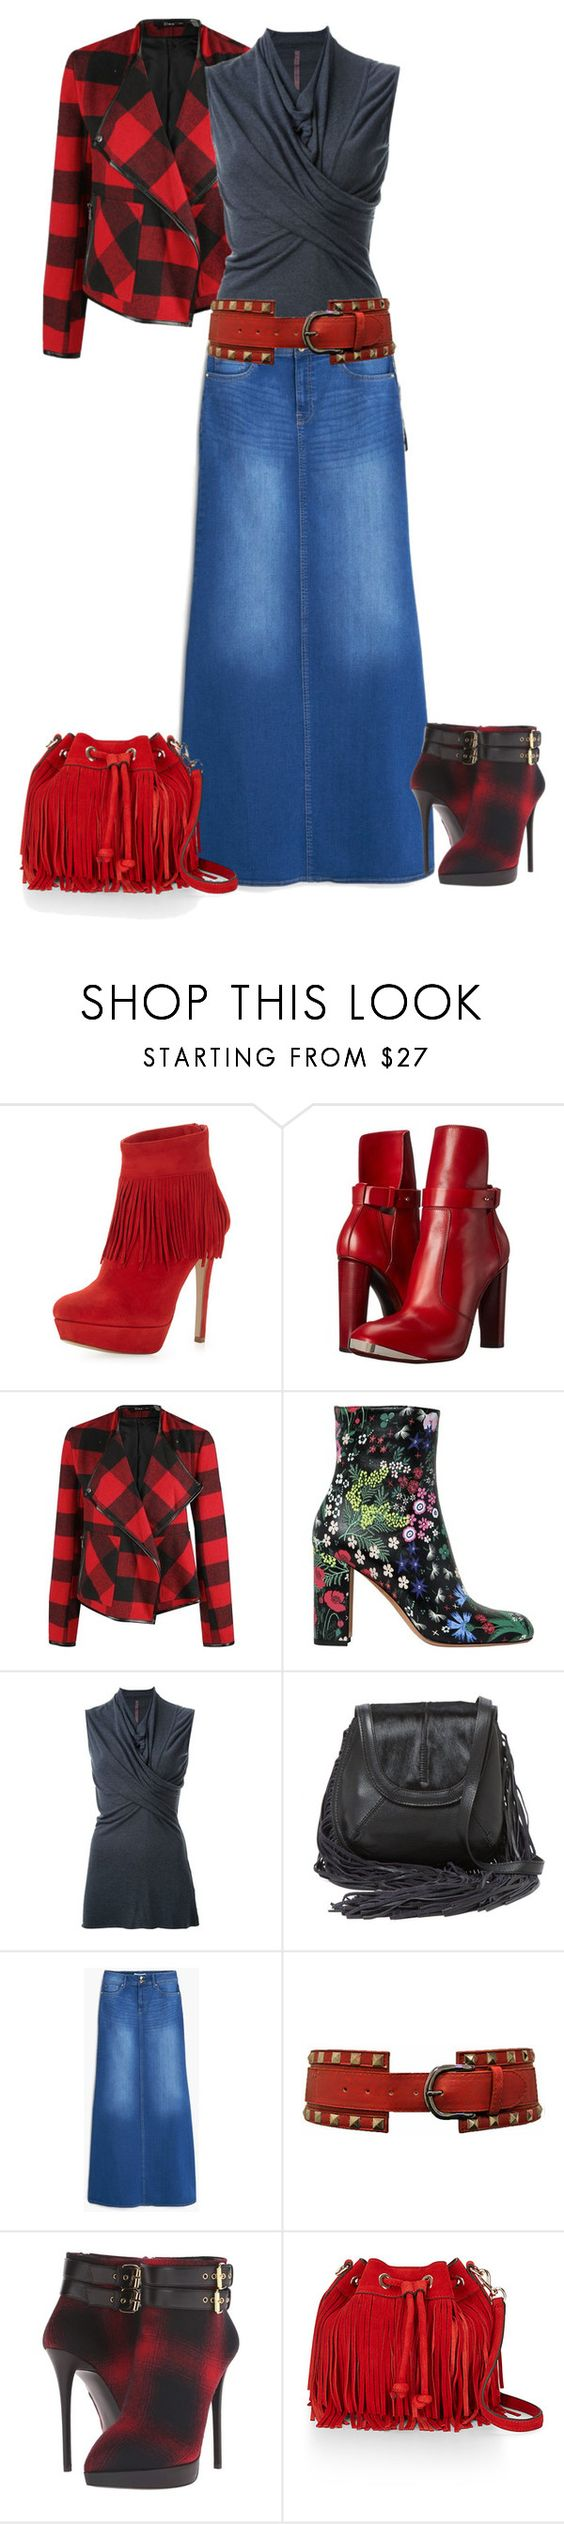 """Bit of Plaid"" by lovetodrinktea ❤ liked on Polyvore featuring Charles David, COSTUME NATIONAL, Dex, Valentino, Rick Owens Lilies, Isabella Fiore, MANGO, Giuseppe Zanotti and Rebecca Minkoff"